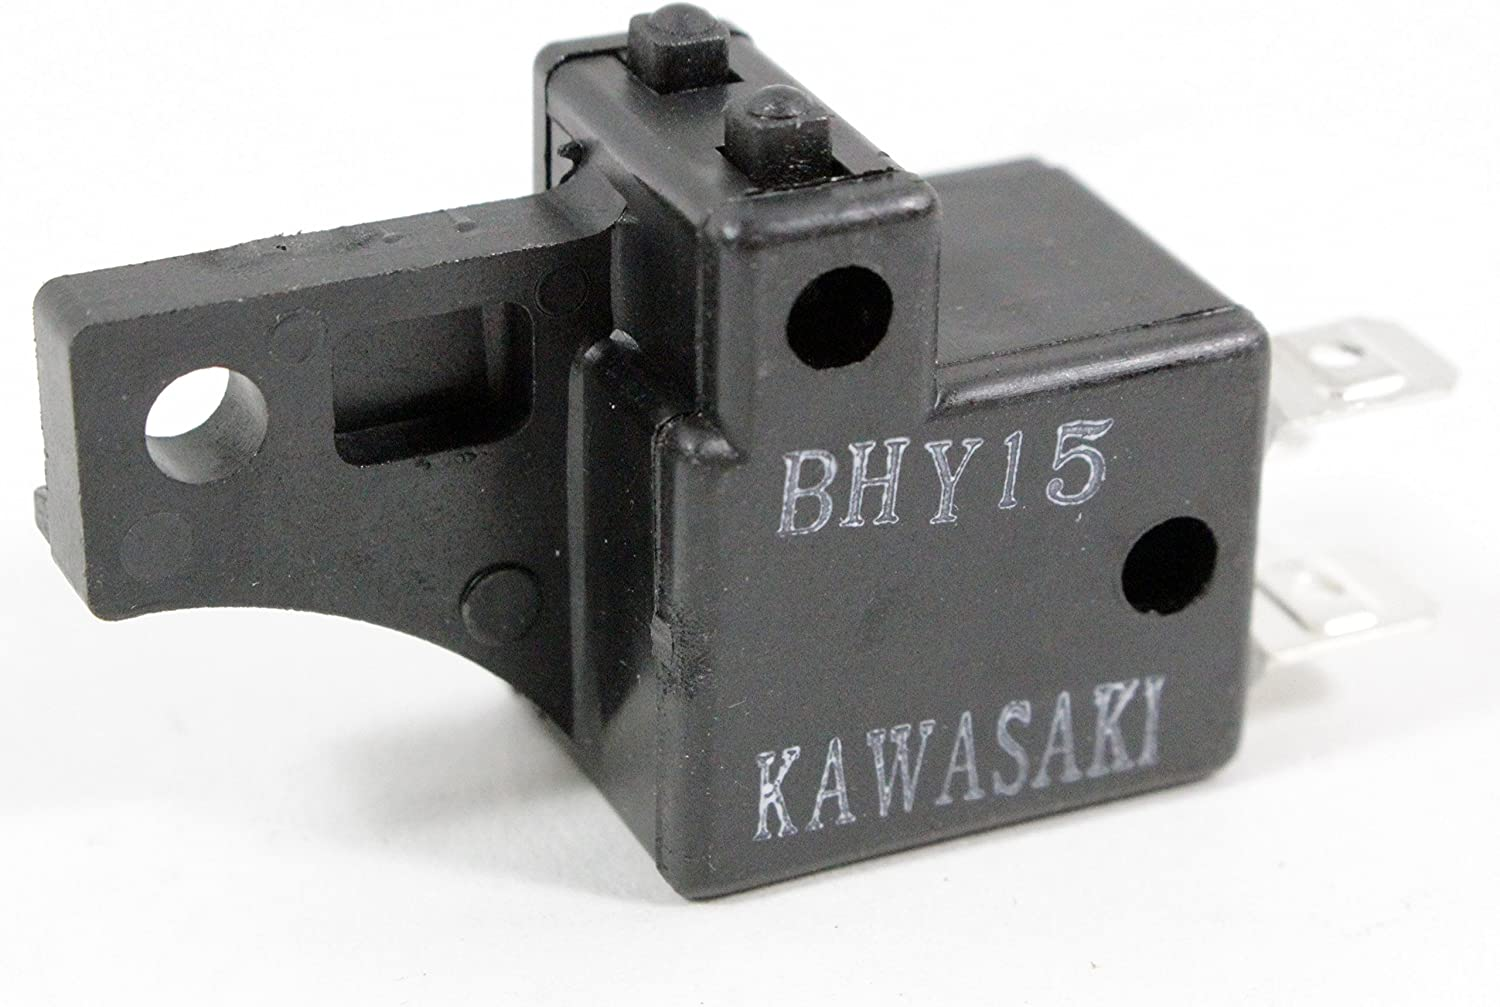 Kawasaki 1987-2018 Voyager 1300 Vulcan 1700 Voyager Abs Cruise Control Switch 27010-1232 New Oem